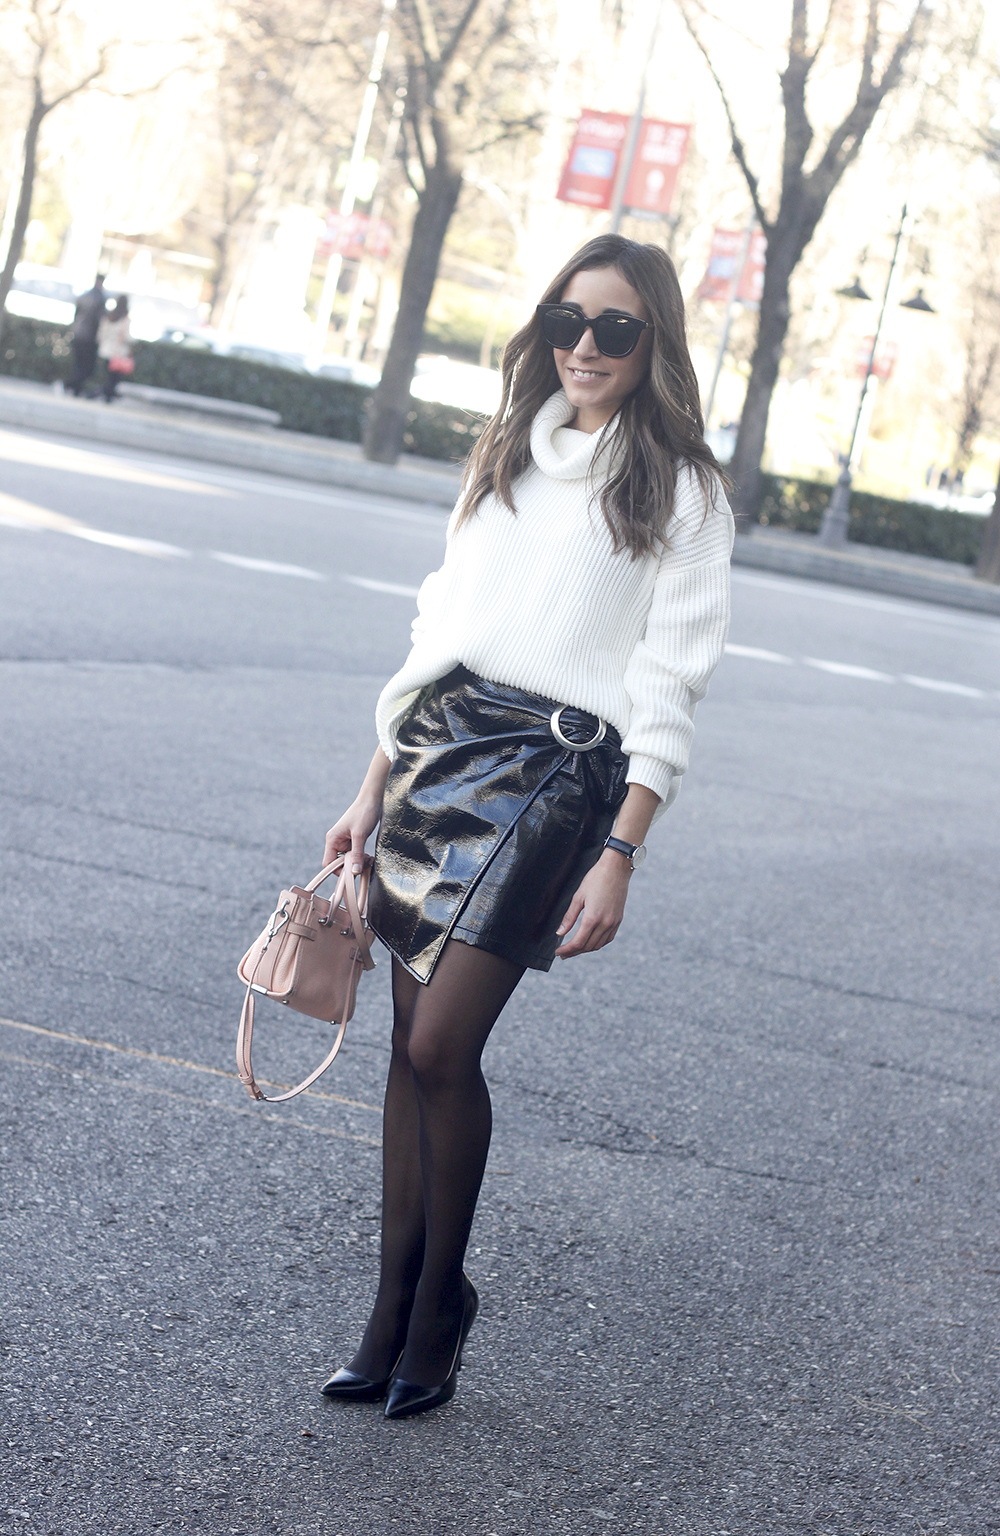 Black Patent leather skirt white sweater coach bag heels outfit style fashion winter09